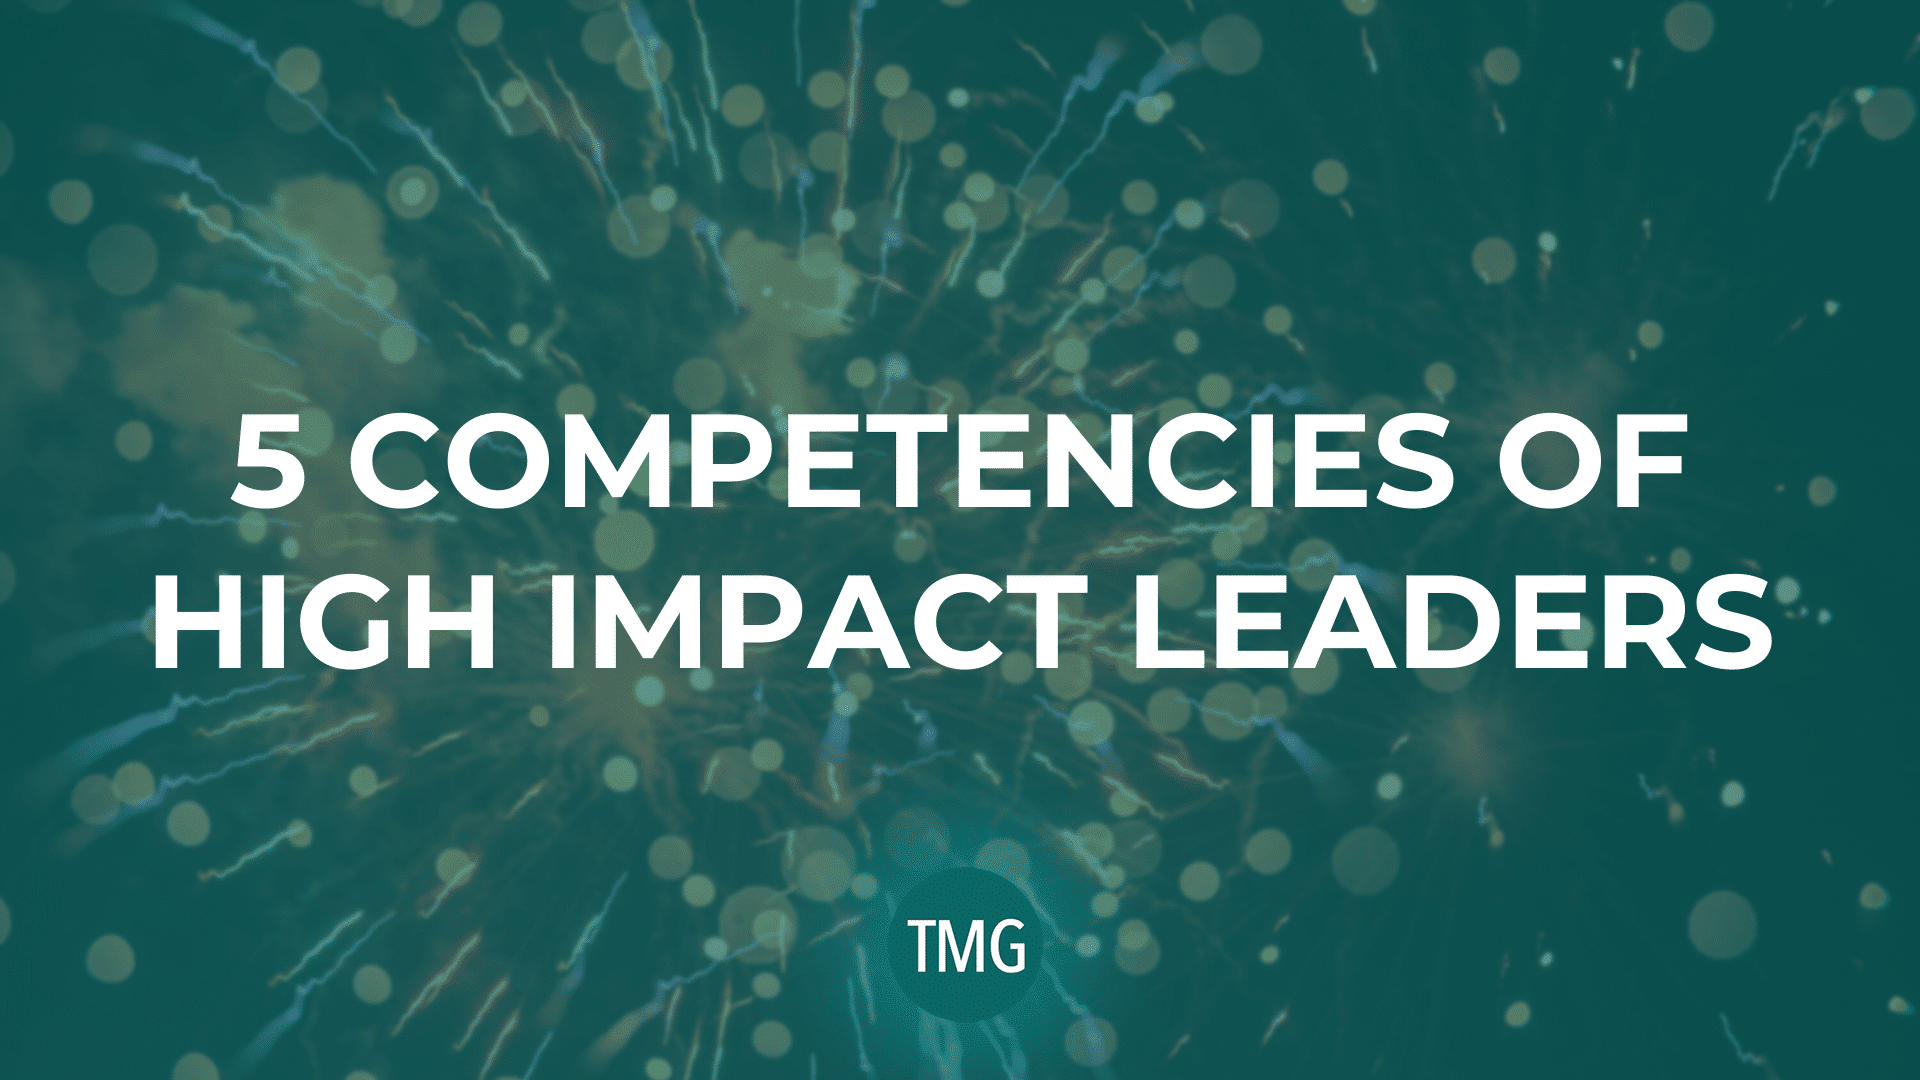 5-competencies-of-high-impact-leaders_the-malphurs-group_the-church-revitalization-podcast